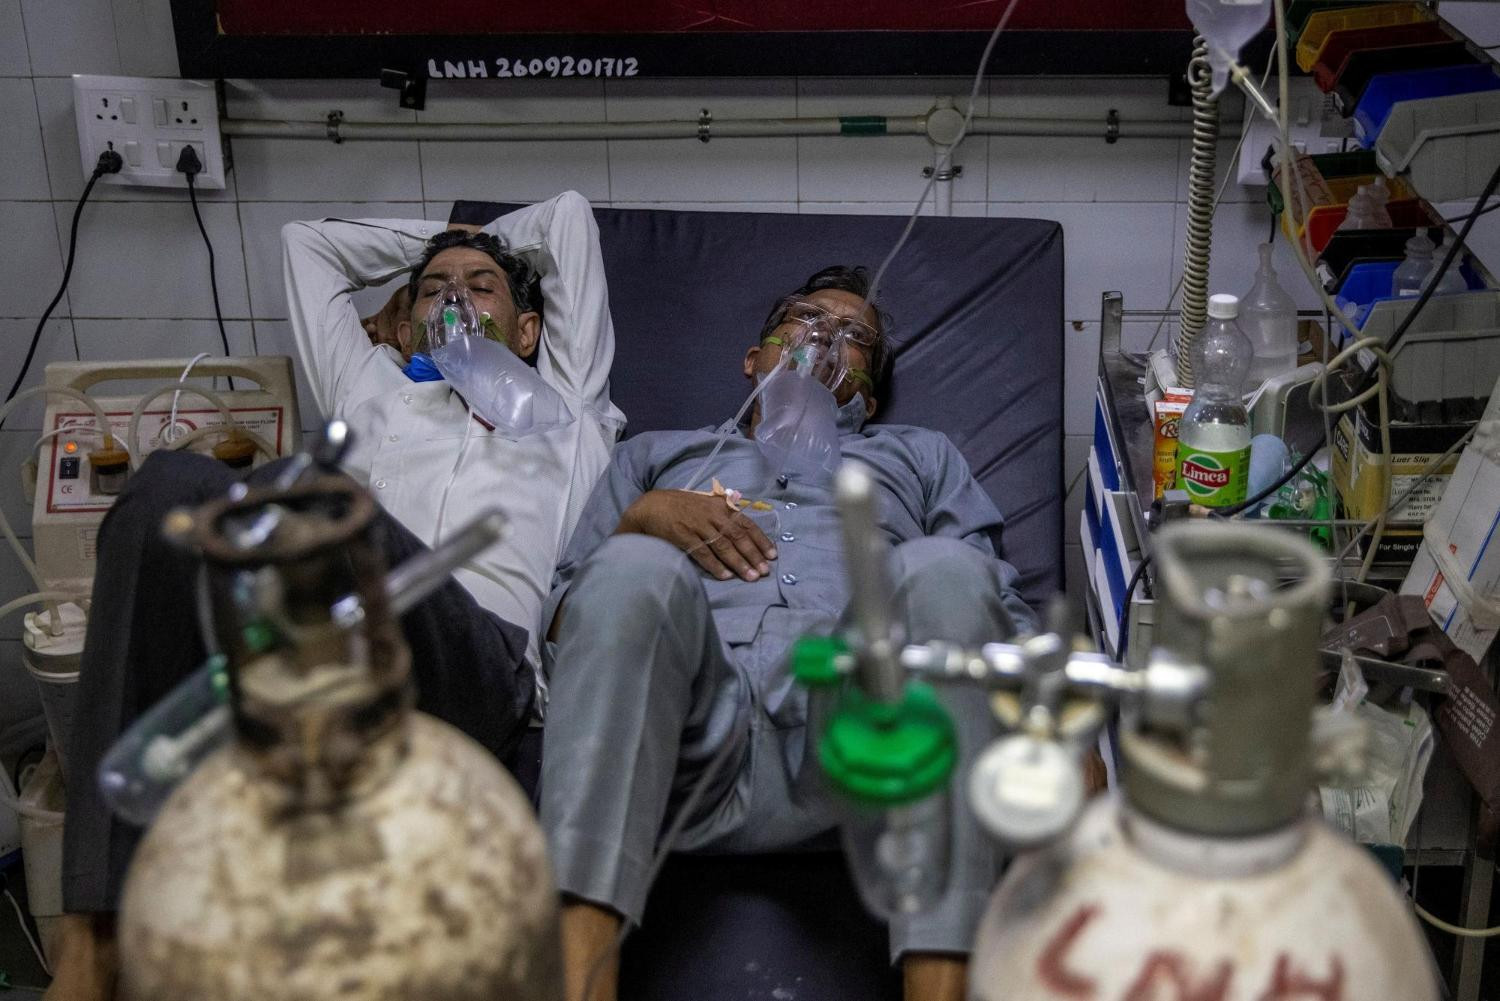 patients suffering from the coronavirus disease covid 19 get treatment at the casualty ward in lok nayak jai prakash lnjp hospital amidst the spread of the disease in new delhi india april 15 2021 photo reuters